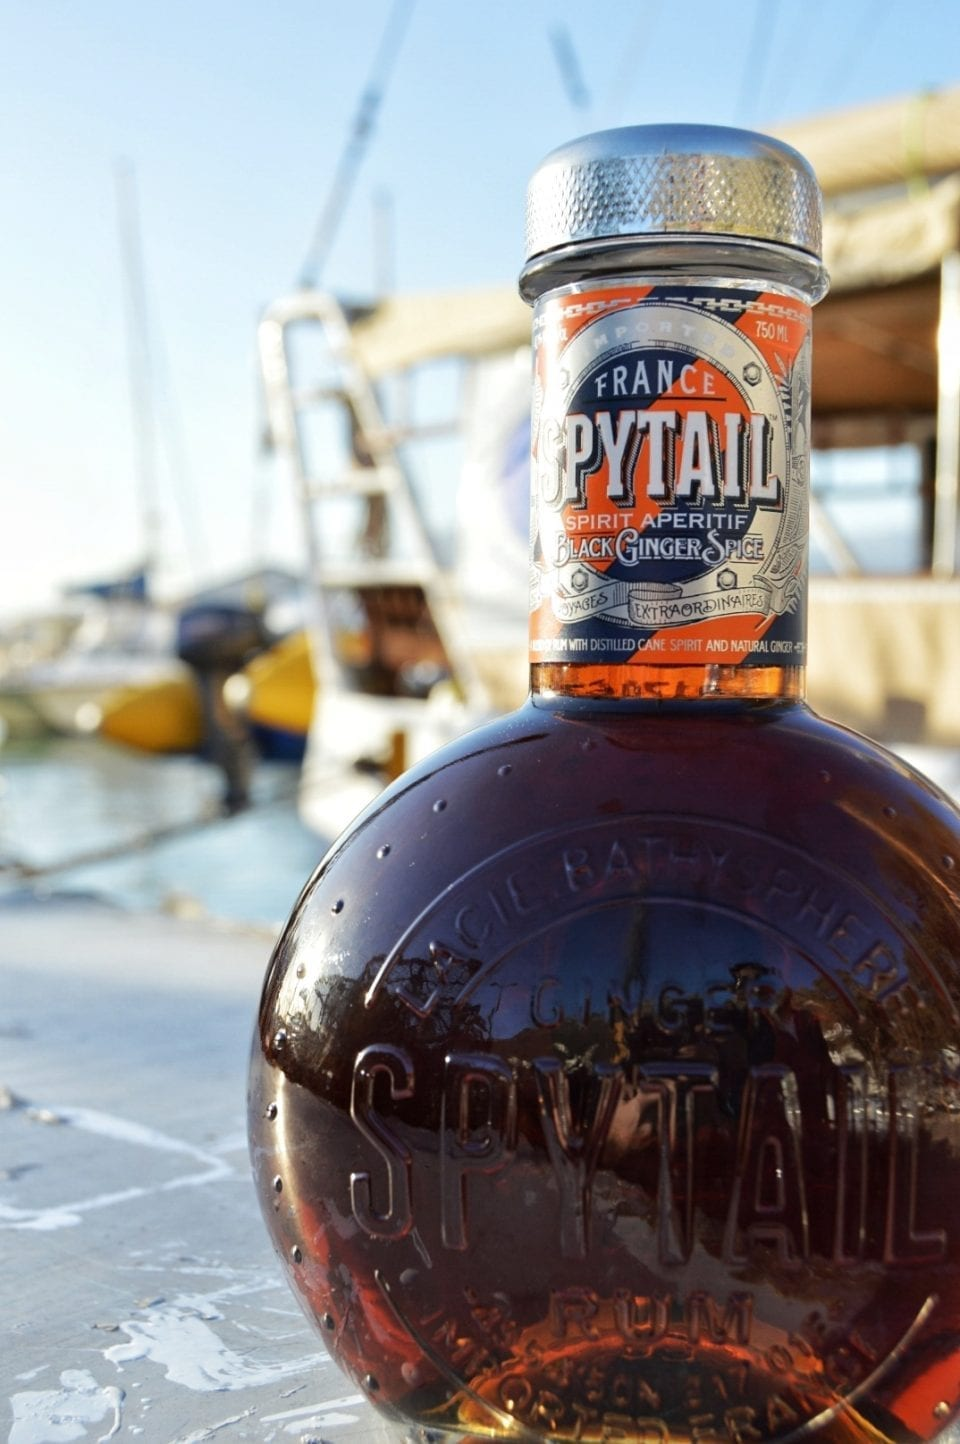 DSC 0103 02 960x1444 - Spytail Dark Rum: Ginger-ly joins the South African drinks Industry